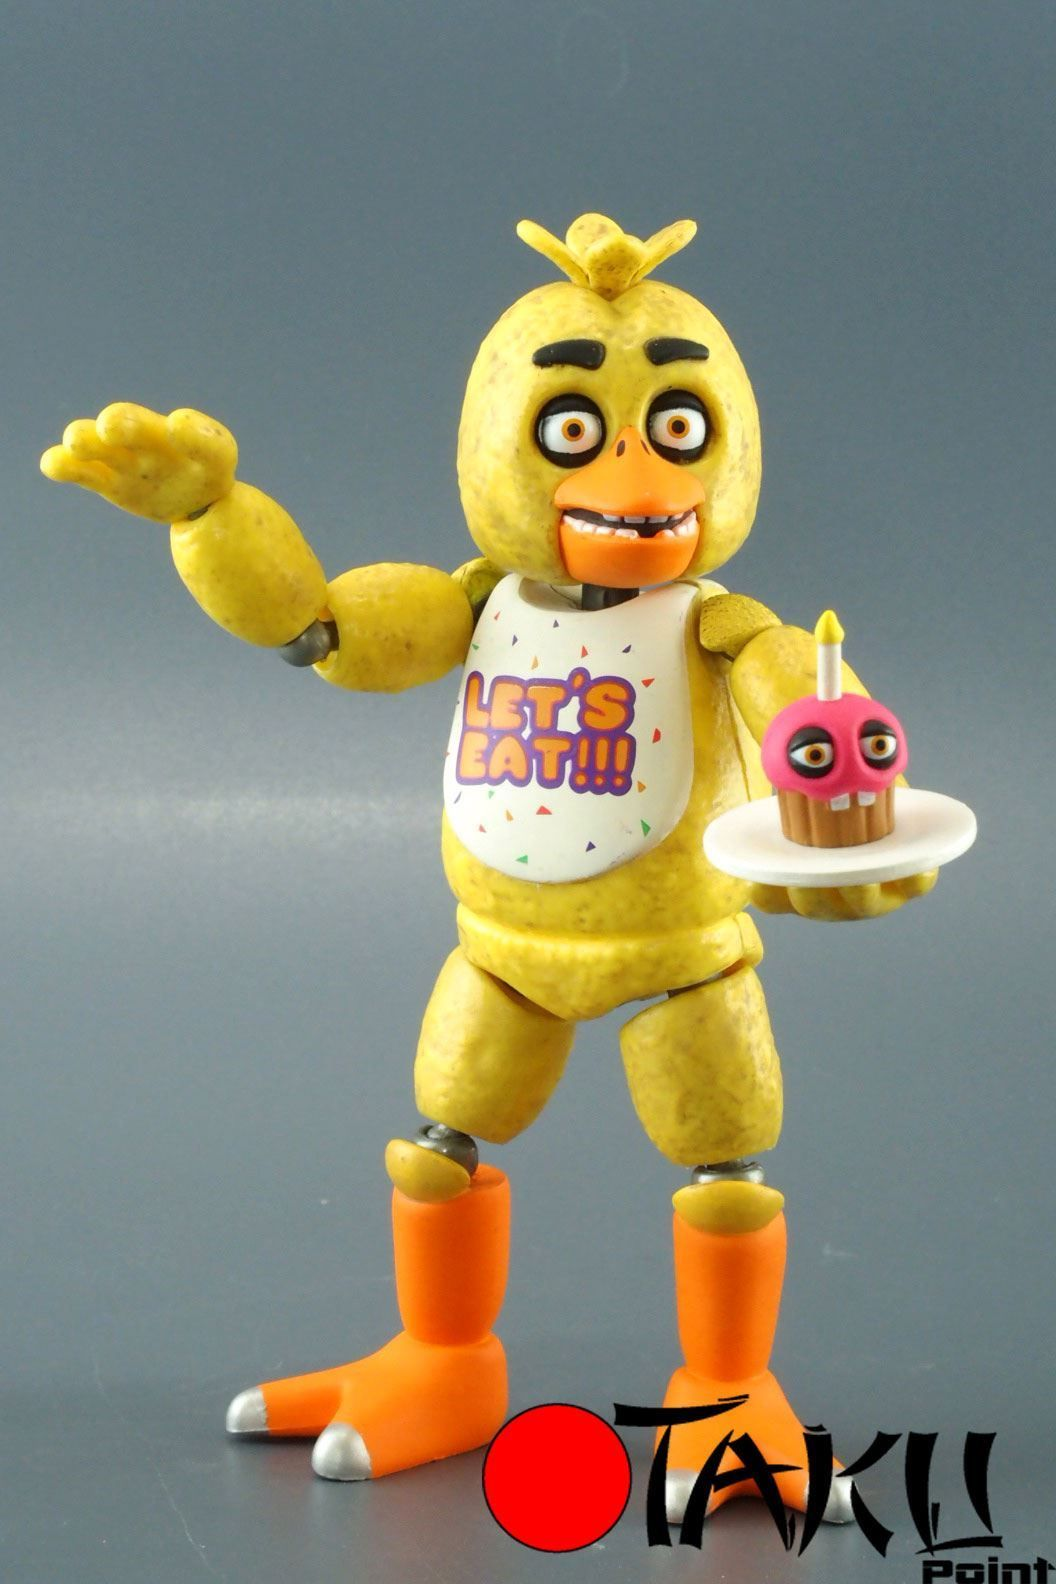 5 Nights At Freddy's Chica five nights at freddy's - funko action figure 13cm - chica